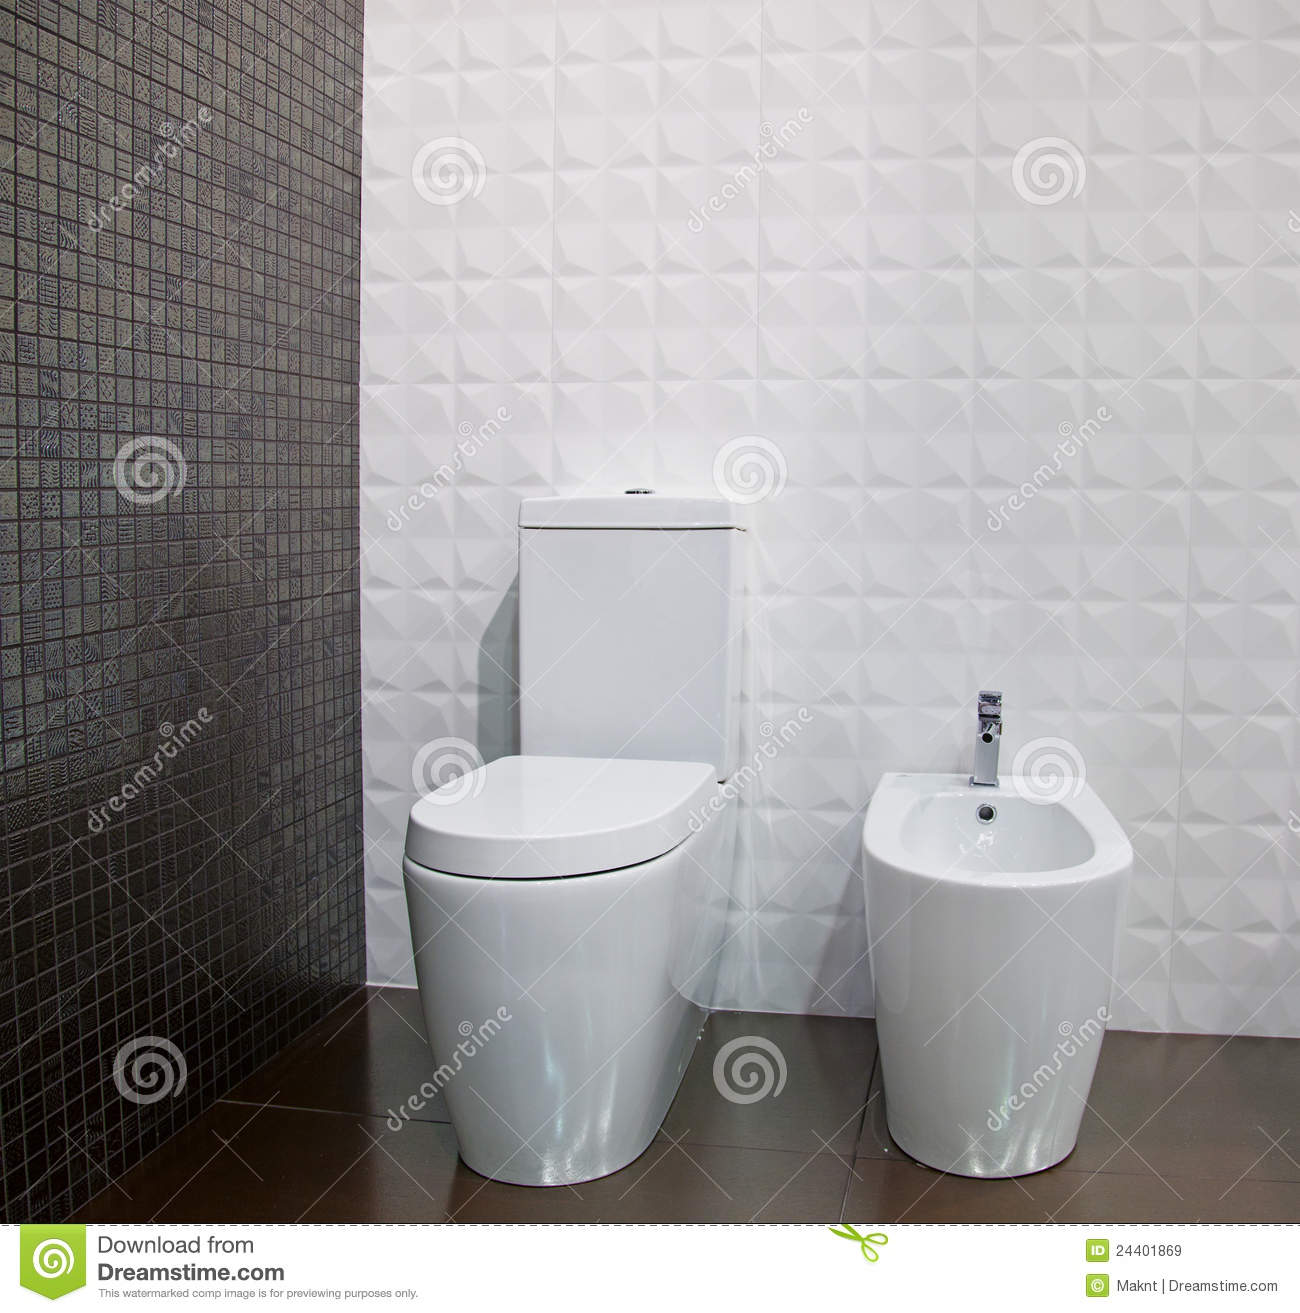 The Toilet And Bidet Royalty Free Stock Images Image